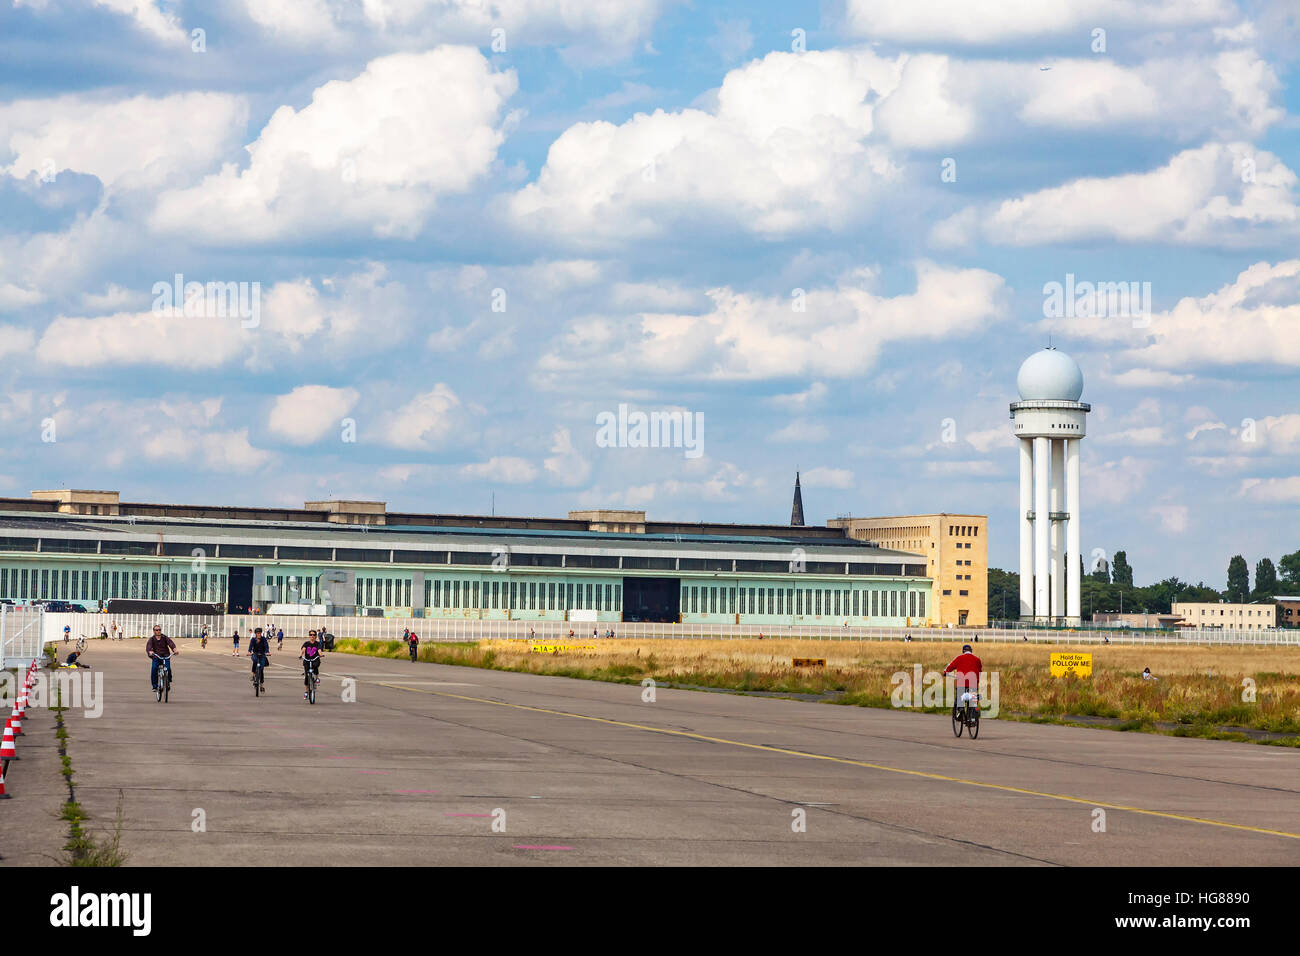 Berlin Tempelhof, former airport in Berlin city, Germany. Since 2008 used as a recreational space known as Tempelhofer - Stock Image